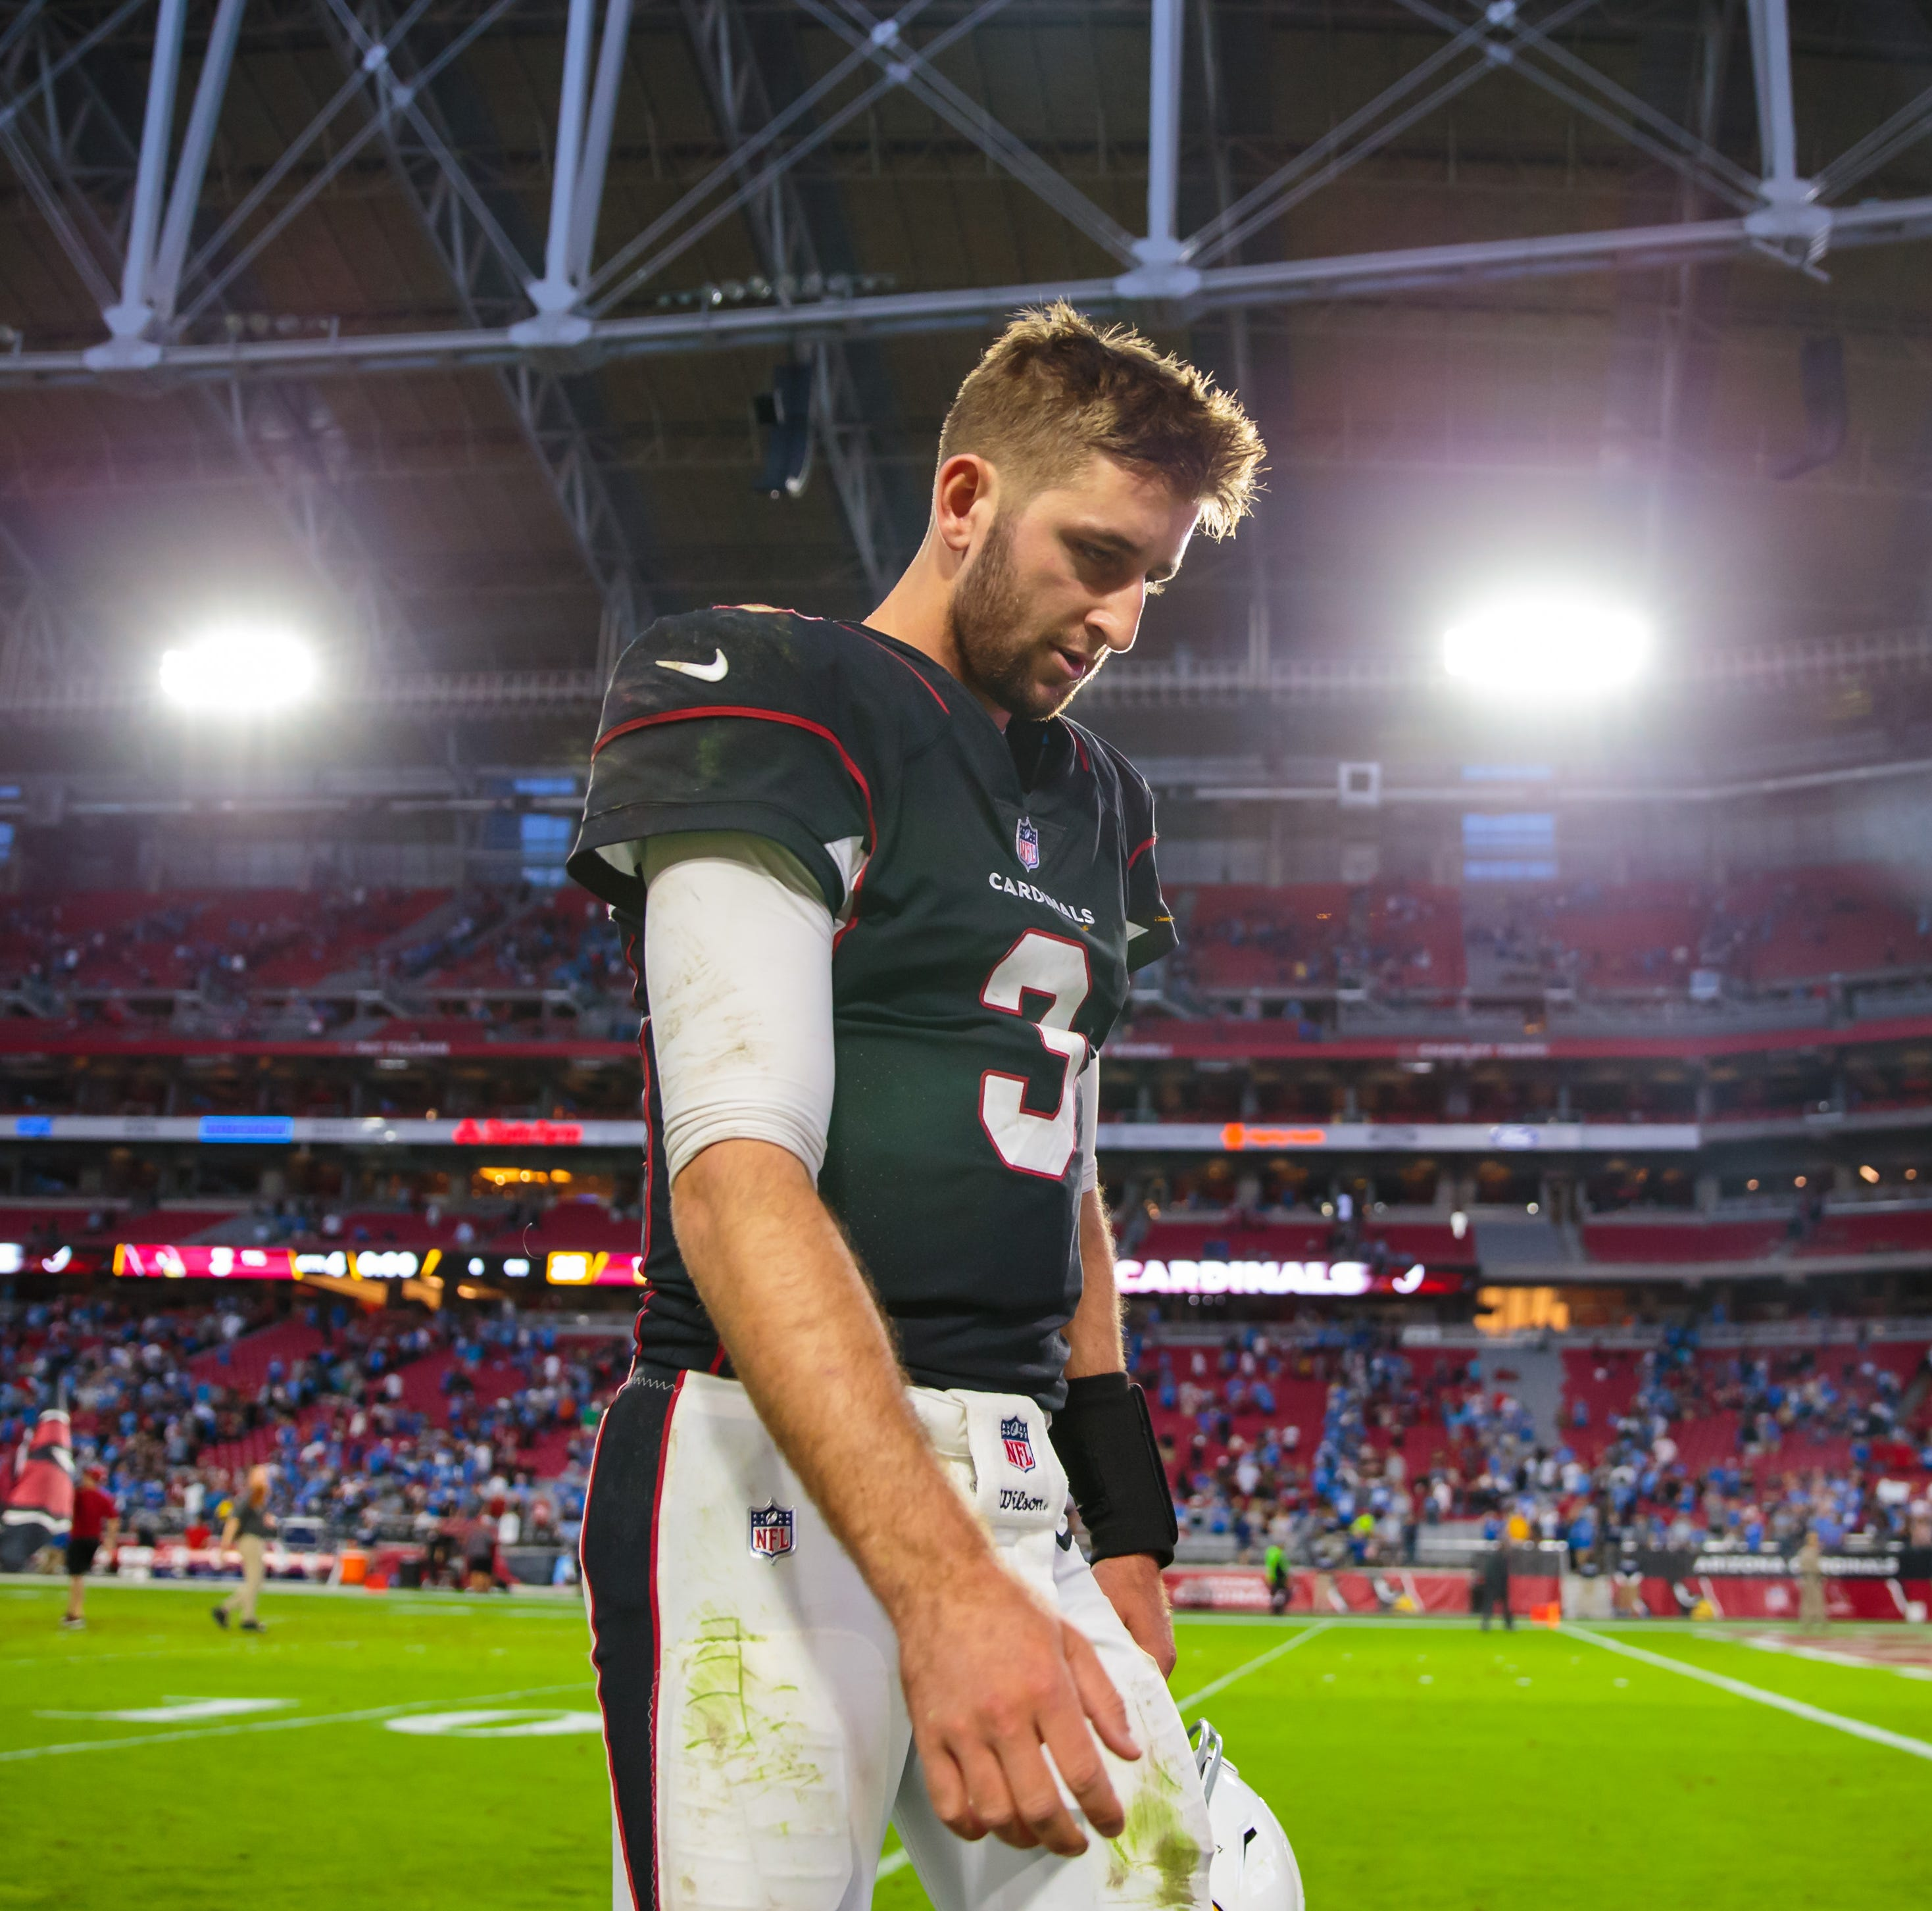 Josh Rosen to Dolphins? Speculation swirls after Miami trades Ryan Tannehill to Titans